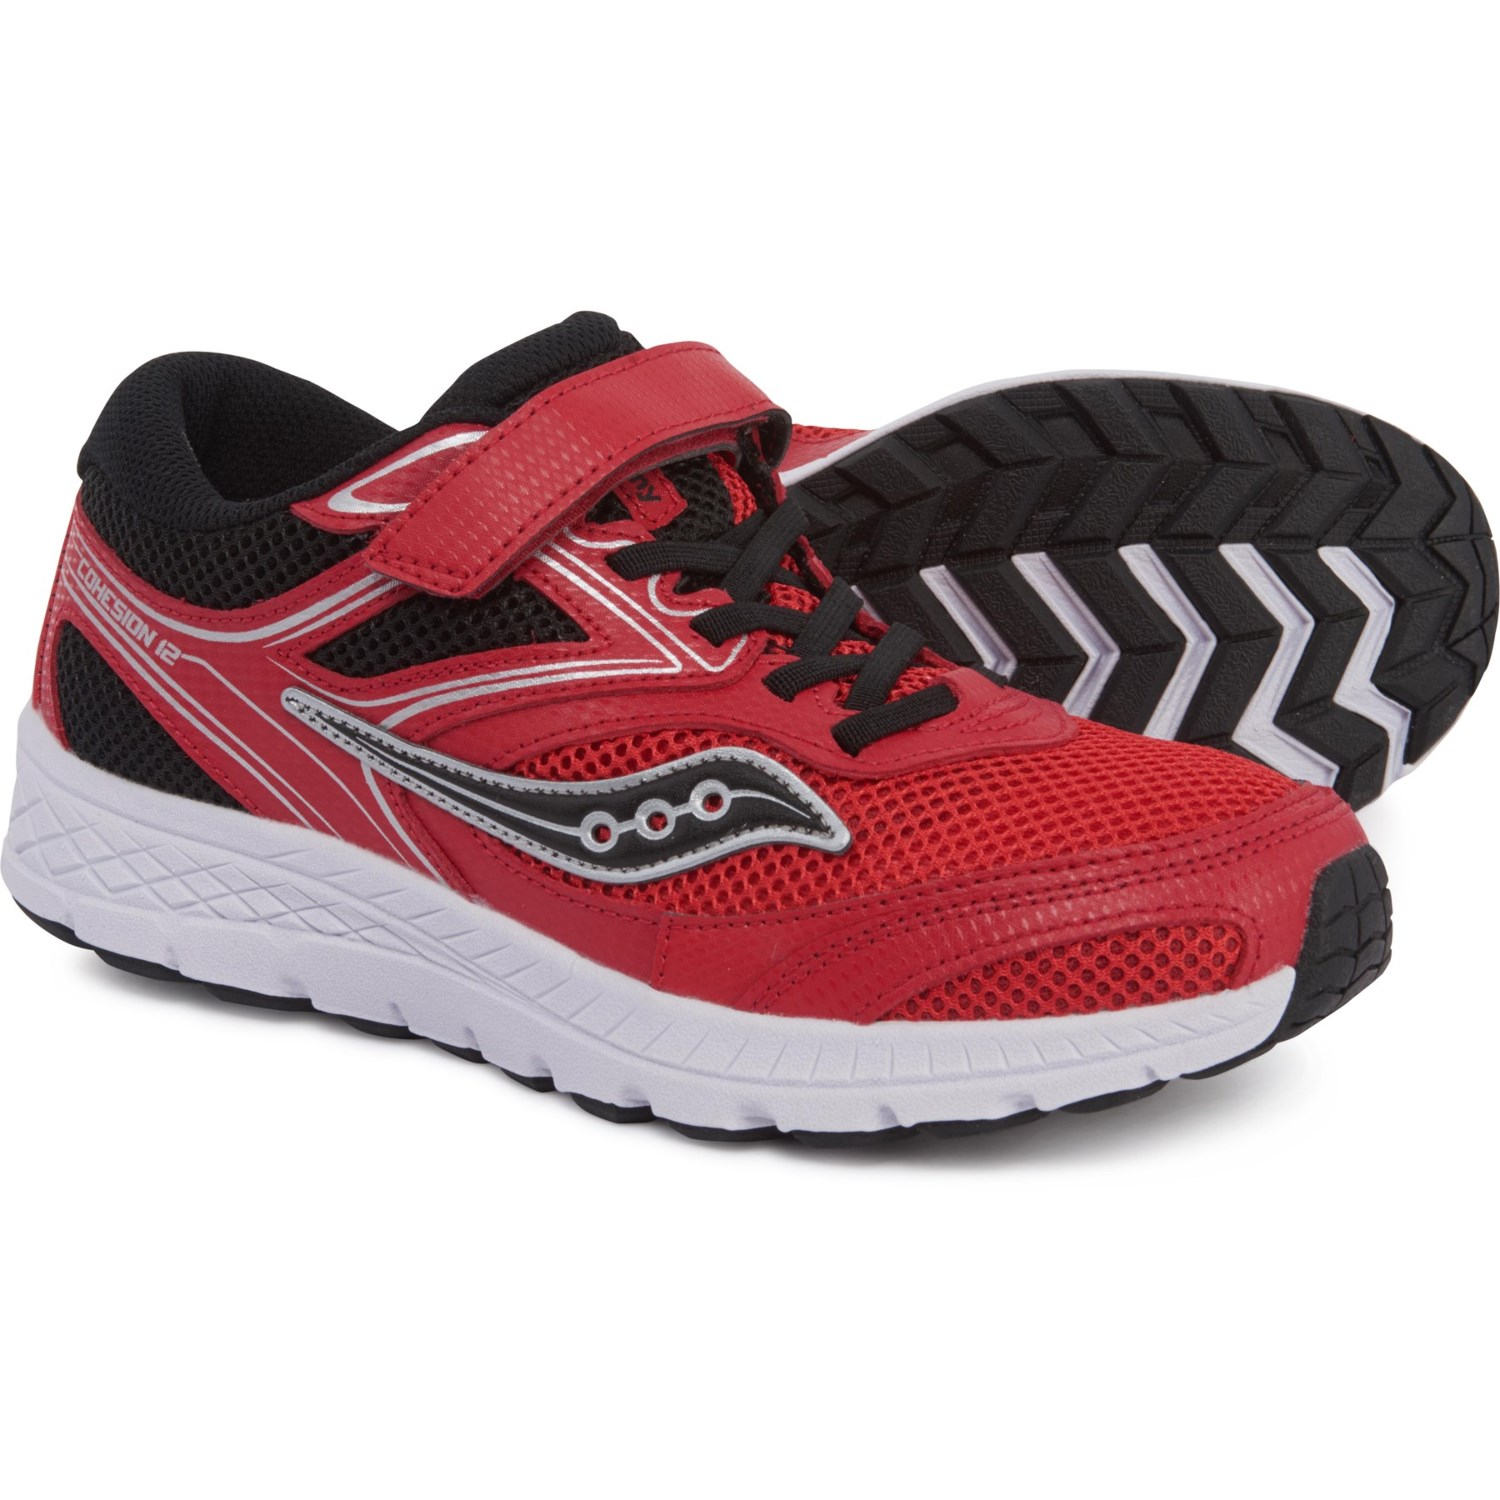 1f44b74242 Saucony Cohesion 12 A/C Running Shoes (For Boys) - Save 37%